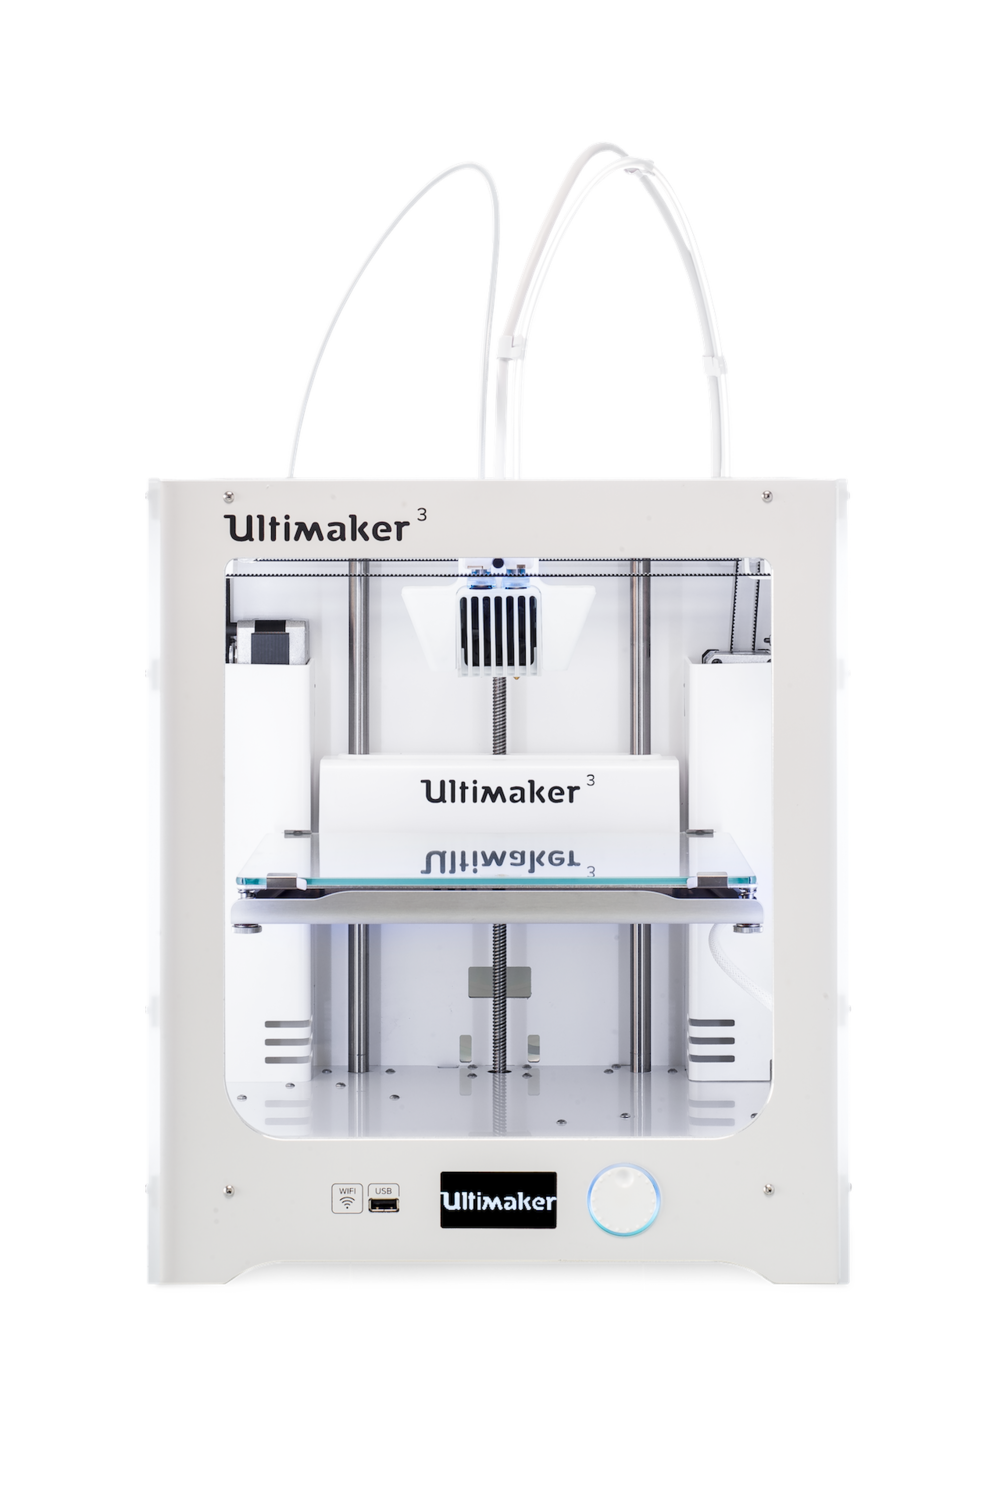 The new Ultimaker 3 desktop 3D printer